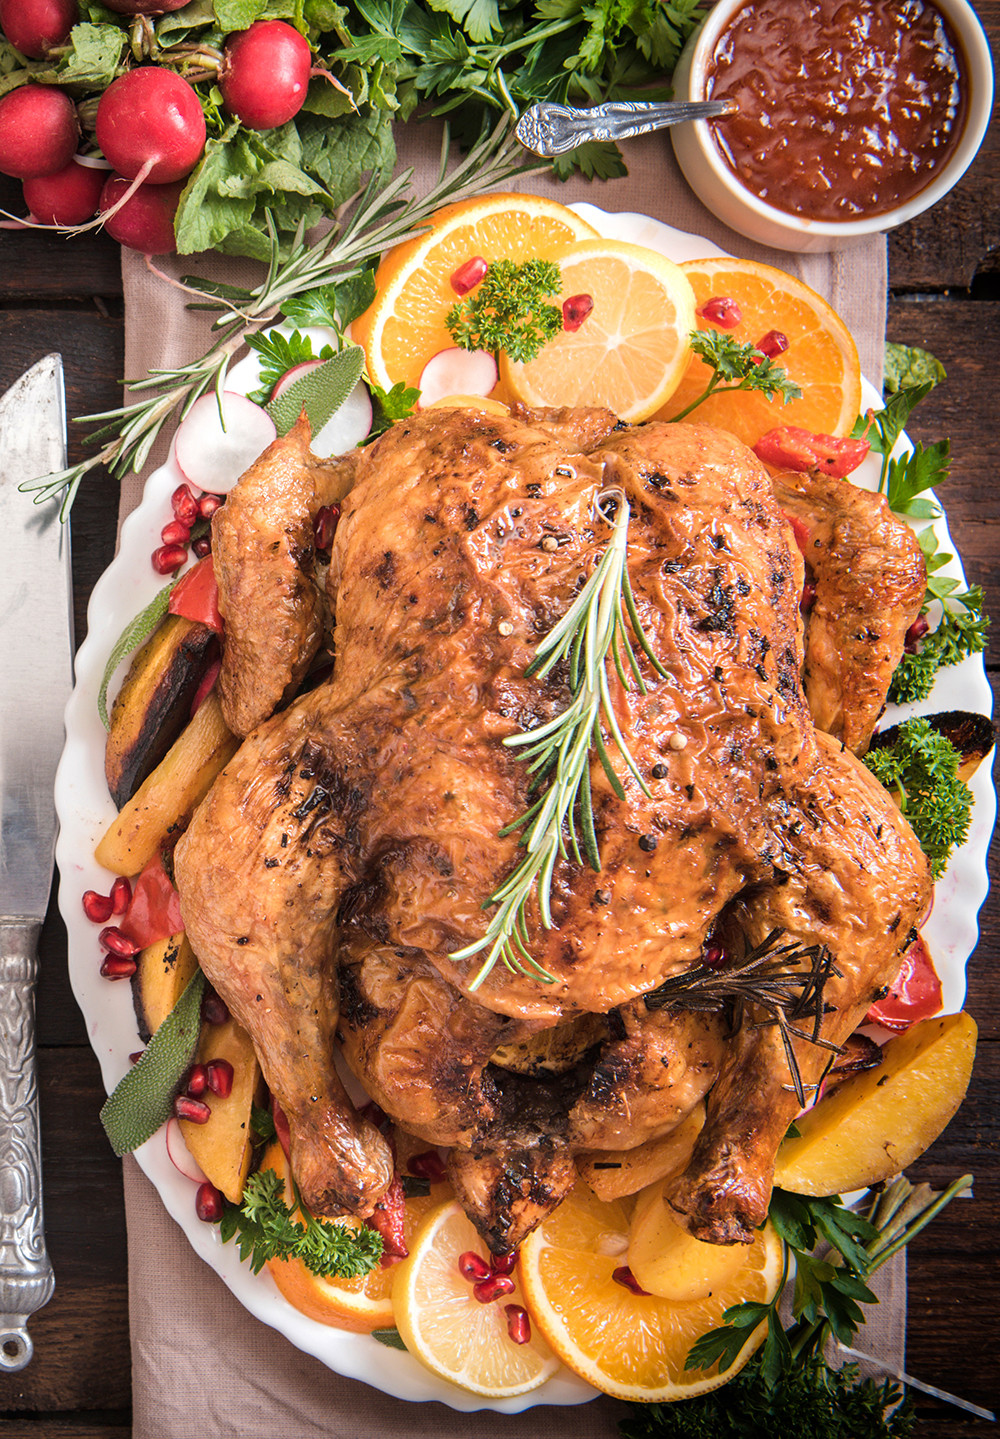 Thanksgiving Dinner Ideas Without Turkey  Full Turkey Dinner 12 – 16 People – Max to Go